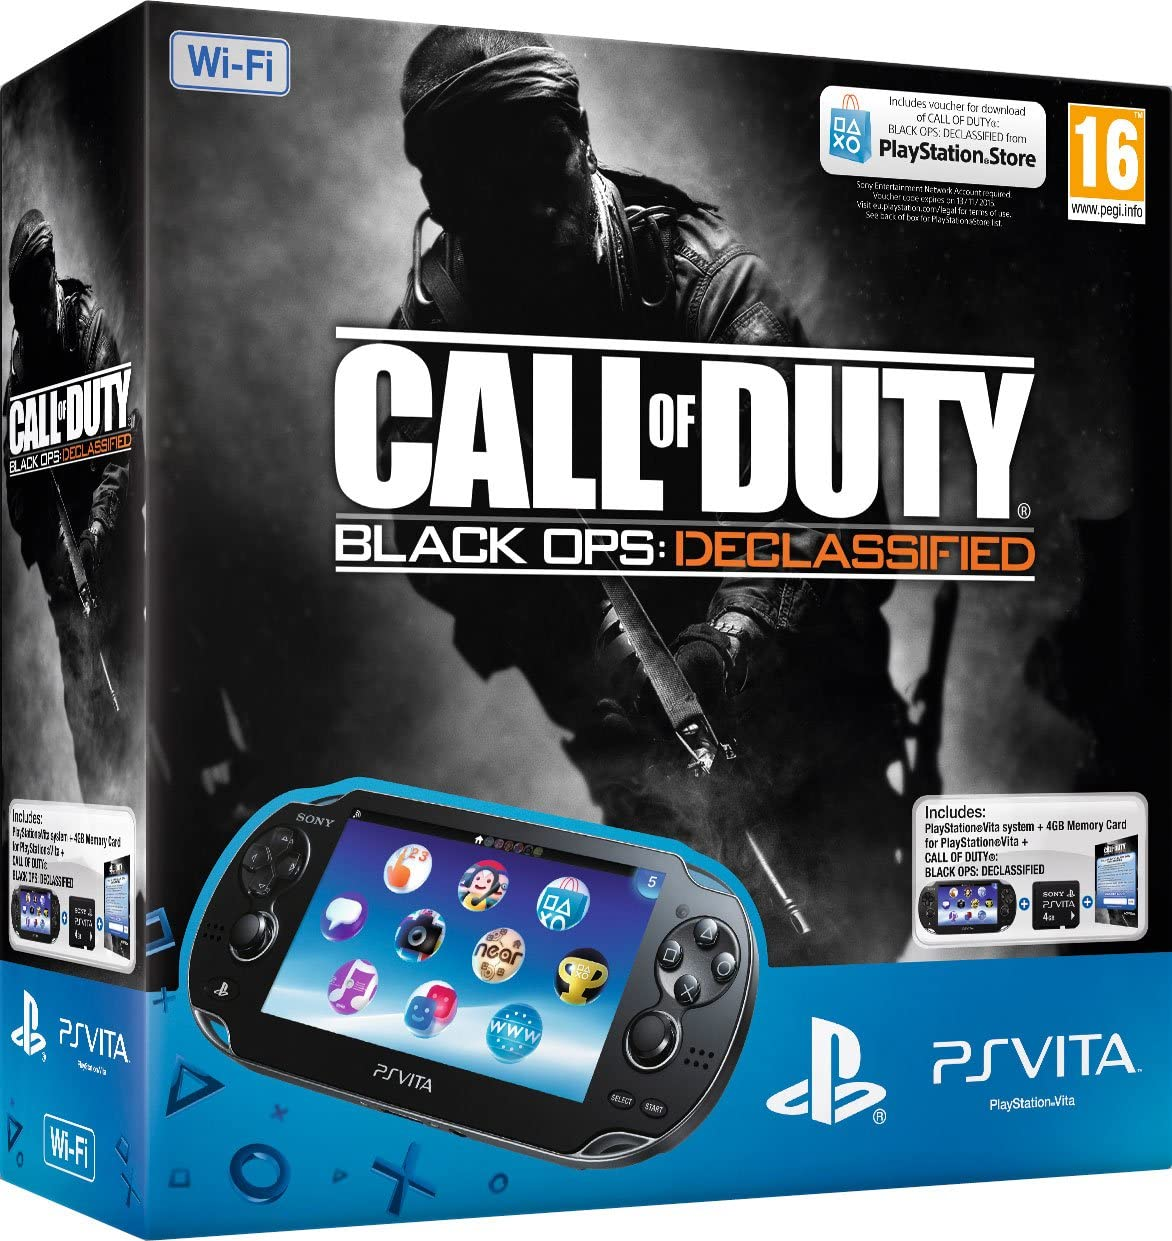 PlayStation Vita Wi-Fi Console with Call of Duty: Black Ops II ...